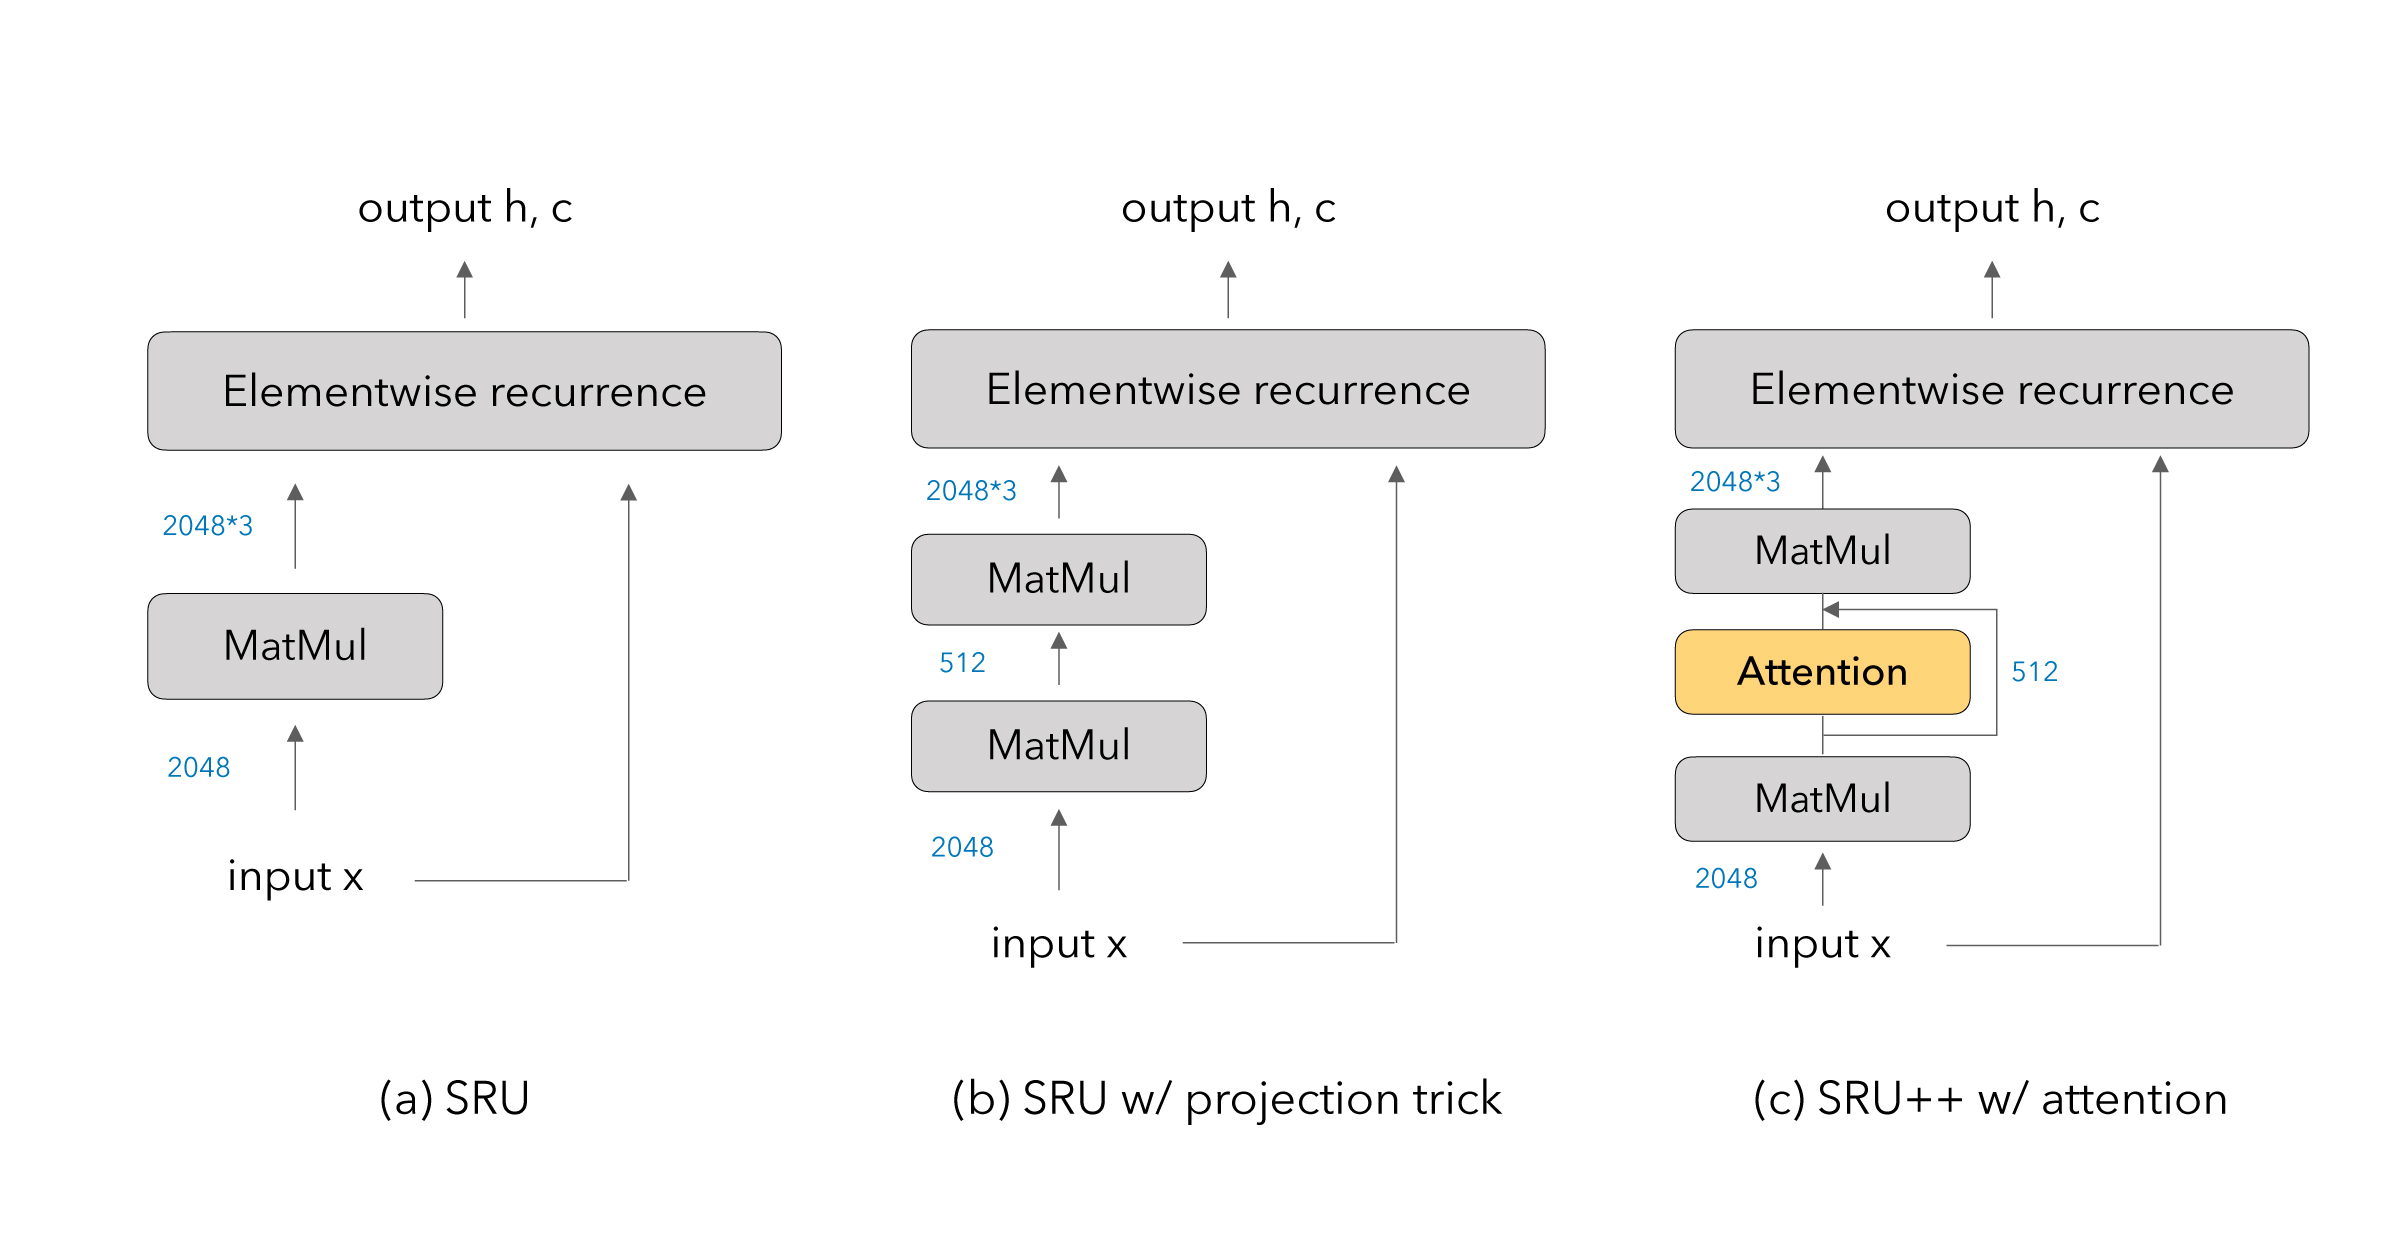 ASAPP—Figure 1: An illustration of SRU and SRU++ networks. (a) the original SRU network, (b) the SRU variant using a projection trick to reduce the number of parameters, experimented in Lei et al. (2018), and (c) SRU++ proposed in this work. Numbers indicate the hidden size of intermediate inputs / outputs. A more detailed description of SRU and SRU++ is provided in our paper.